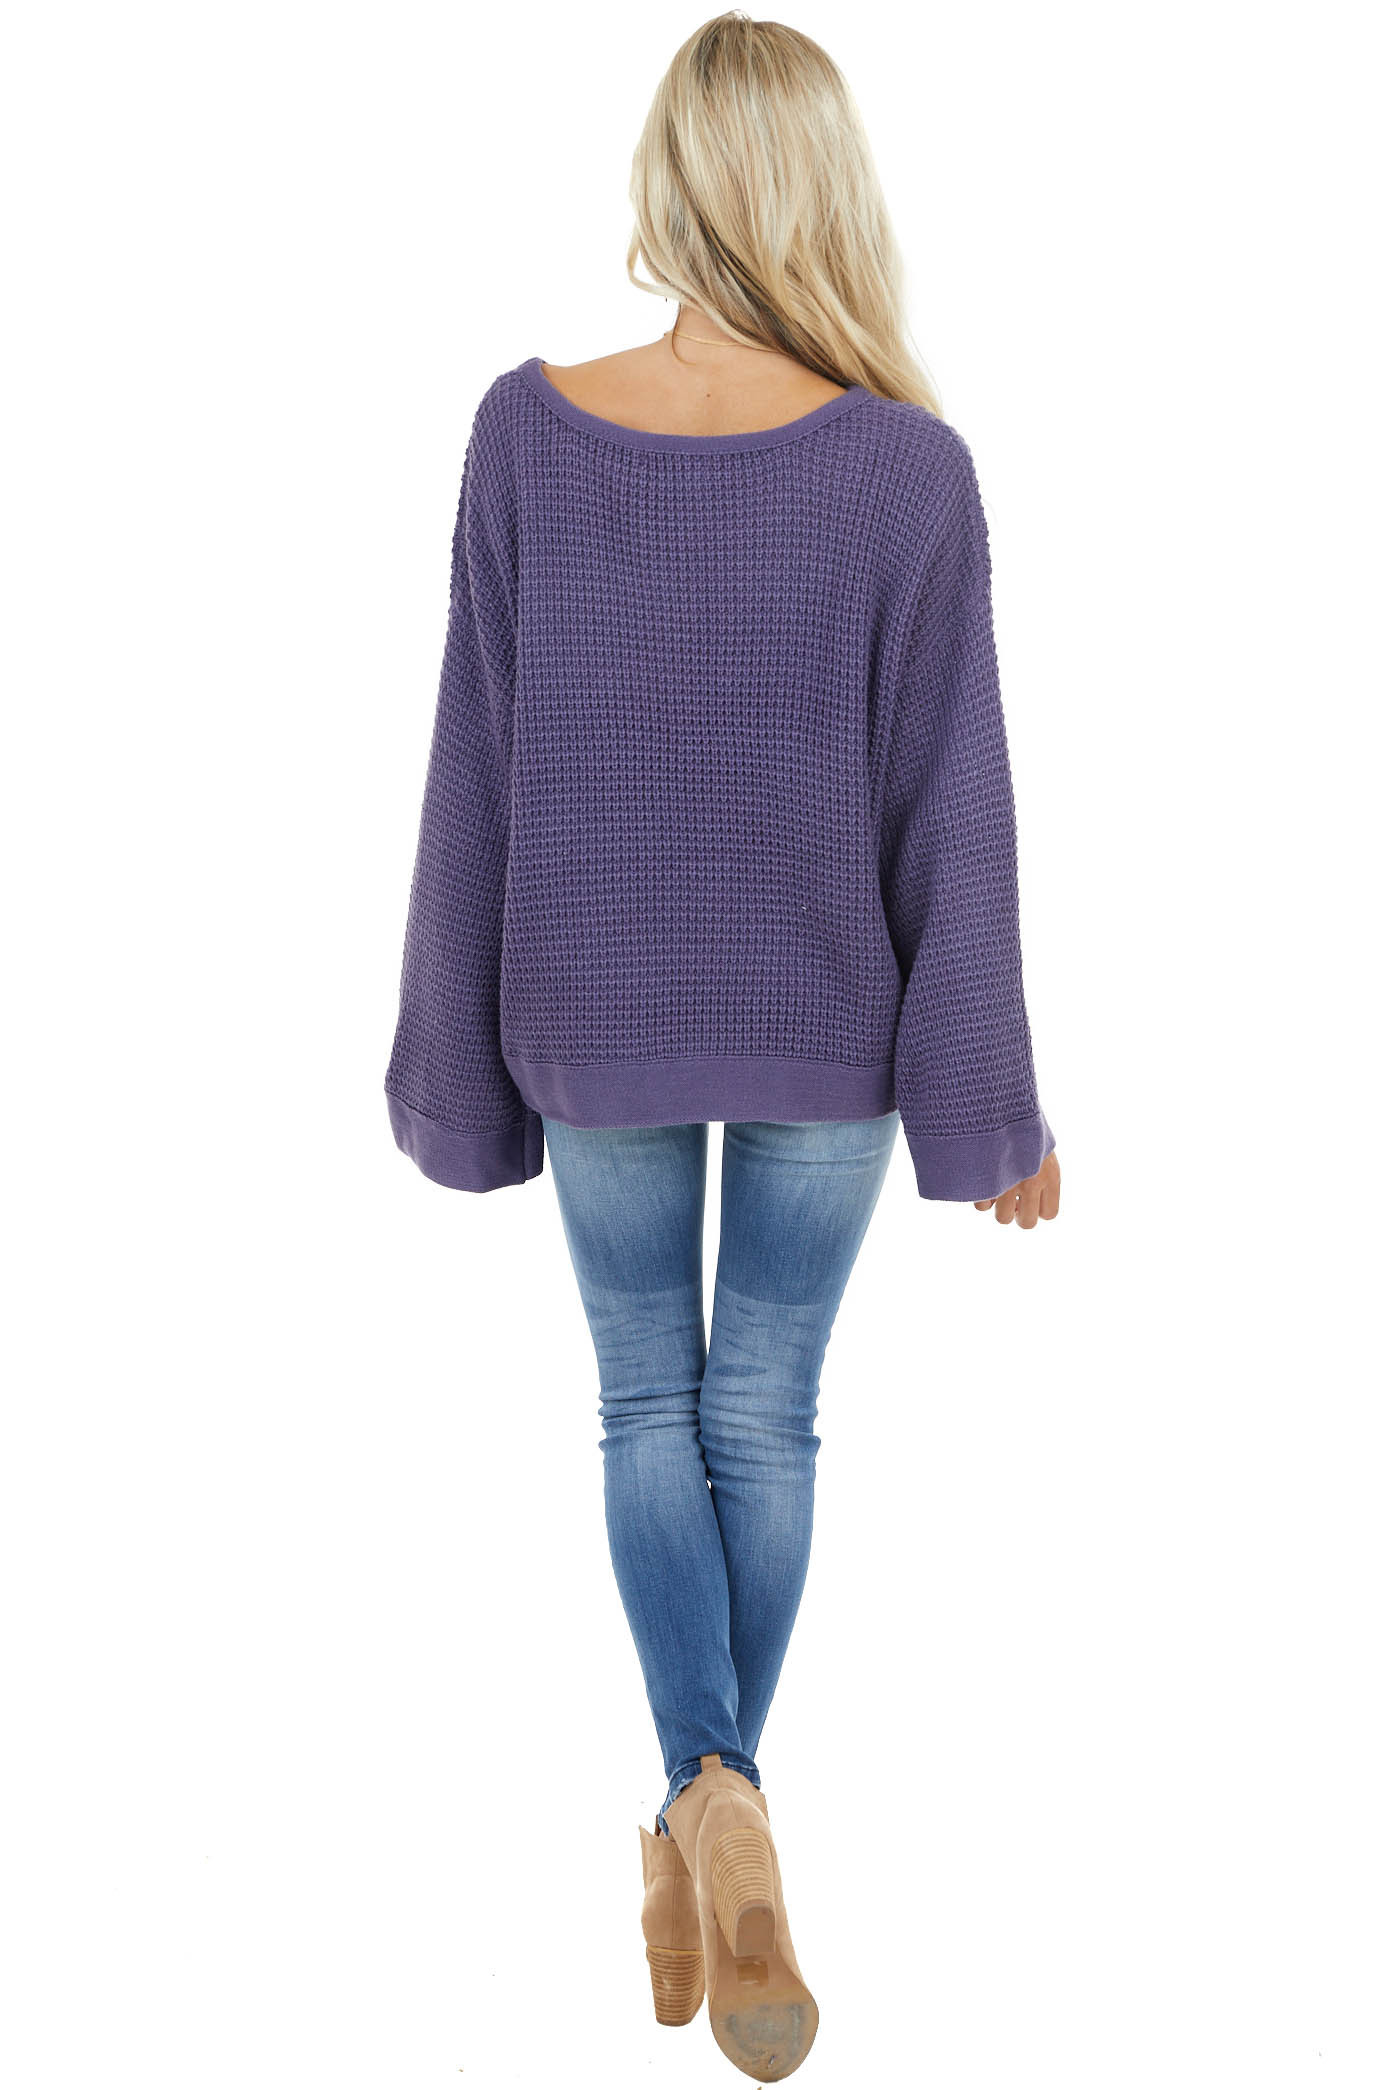 Indigo Stretchy Knit Sweater with Long Bell Sleeves